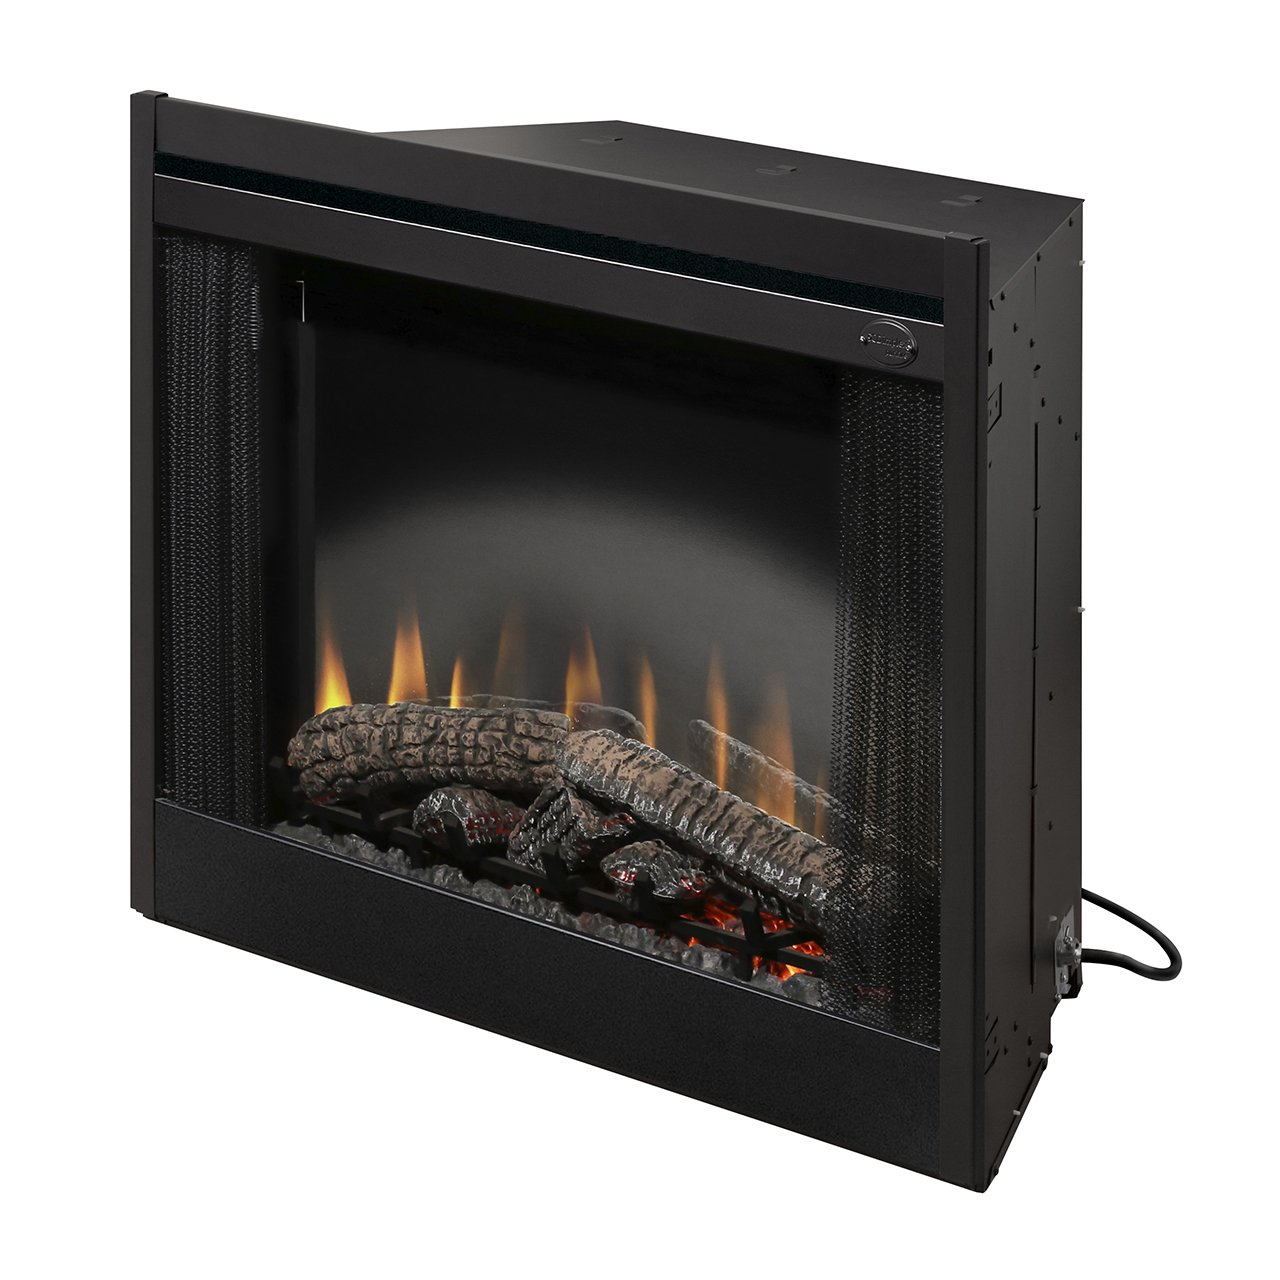 Dimplex 39-In Standard Built-in Electric Fireplace - BF39STP